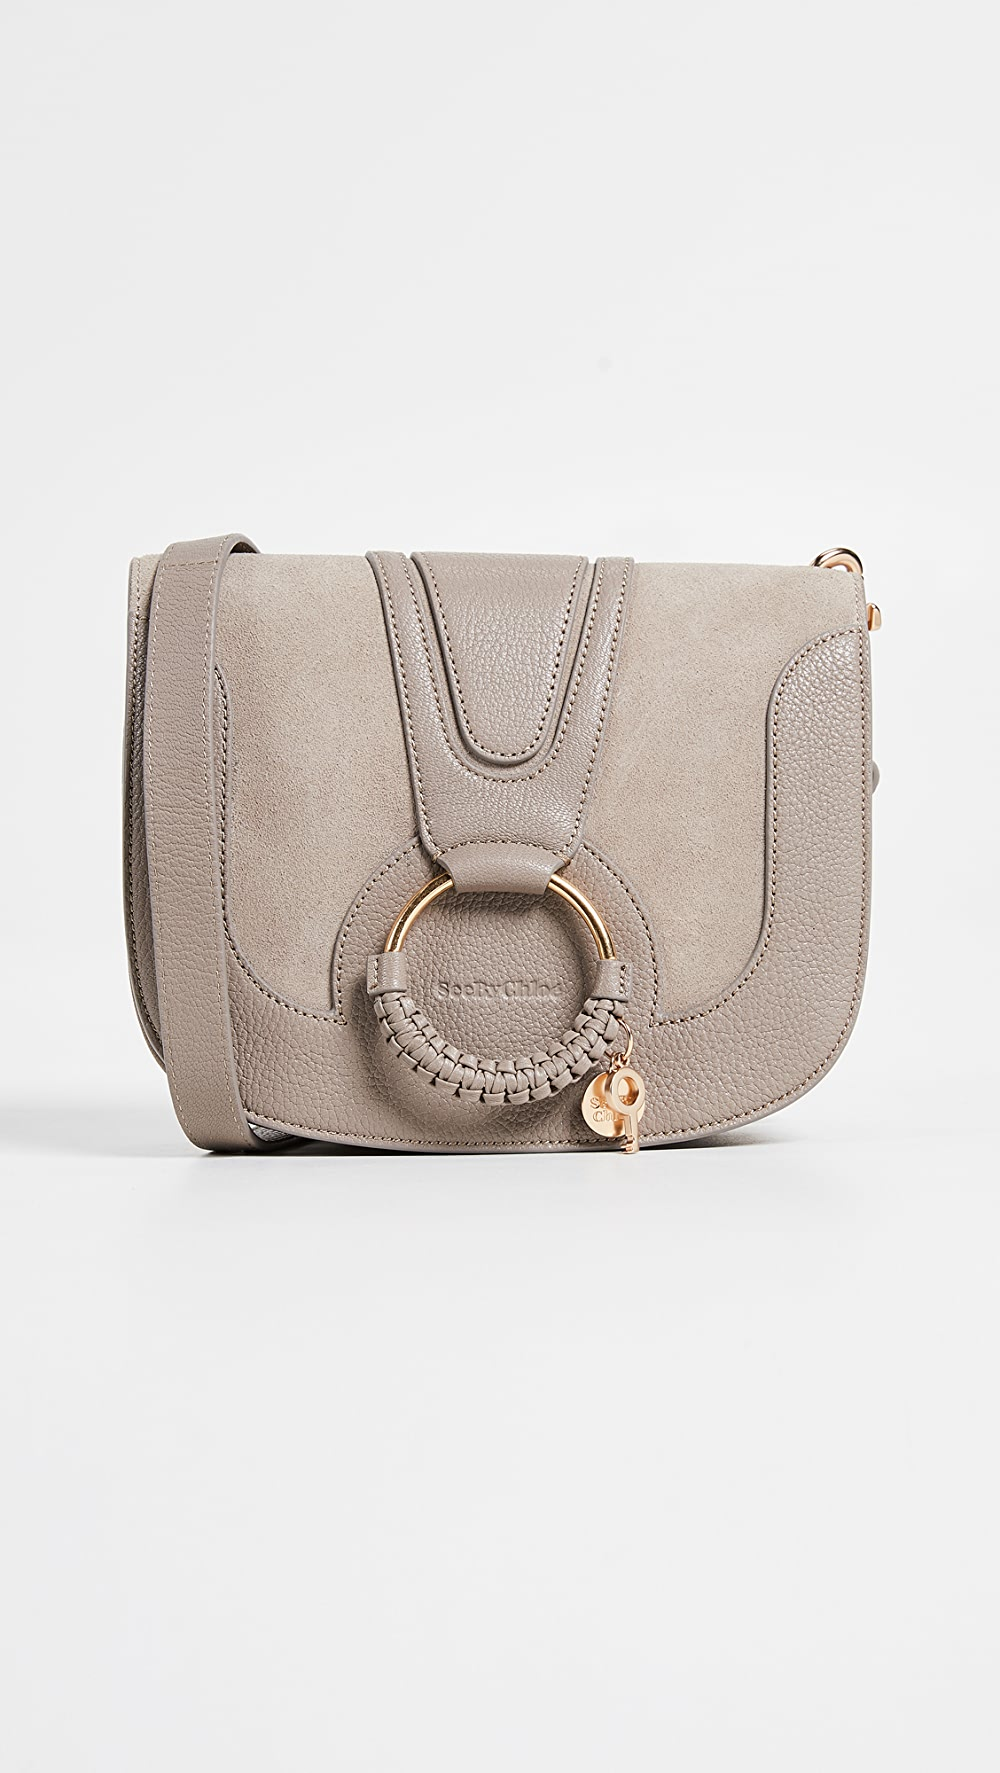 100% Quality See By Chloe - Hana Small Saddle Bag Strong Packing